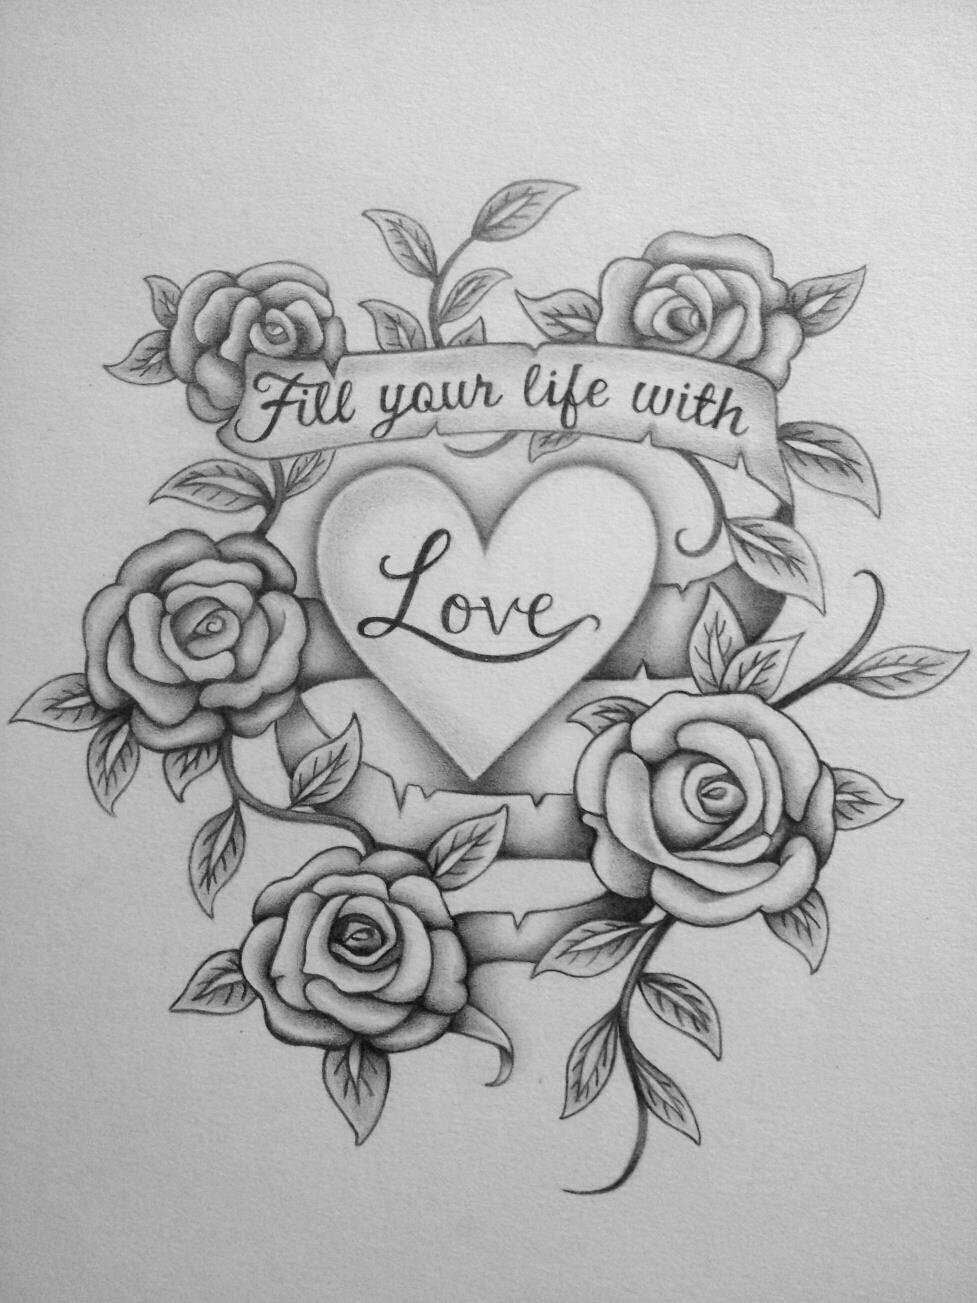 Love Wallpaper In Drawing : Love Tattoo by shell31 on DeviantArt